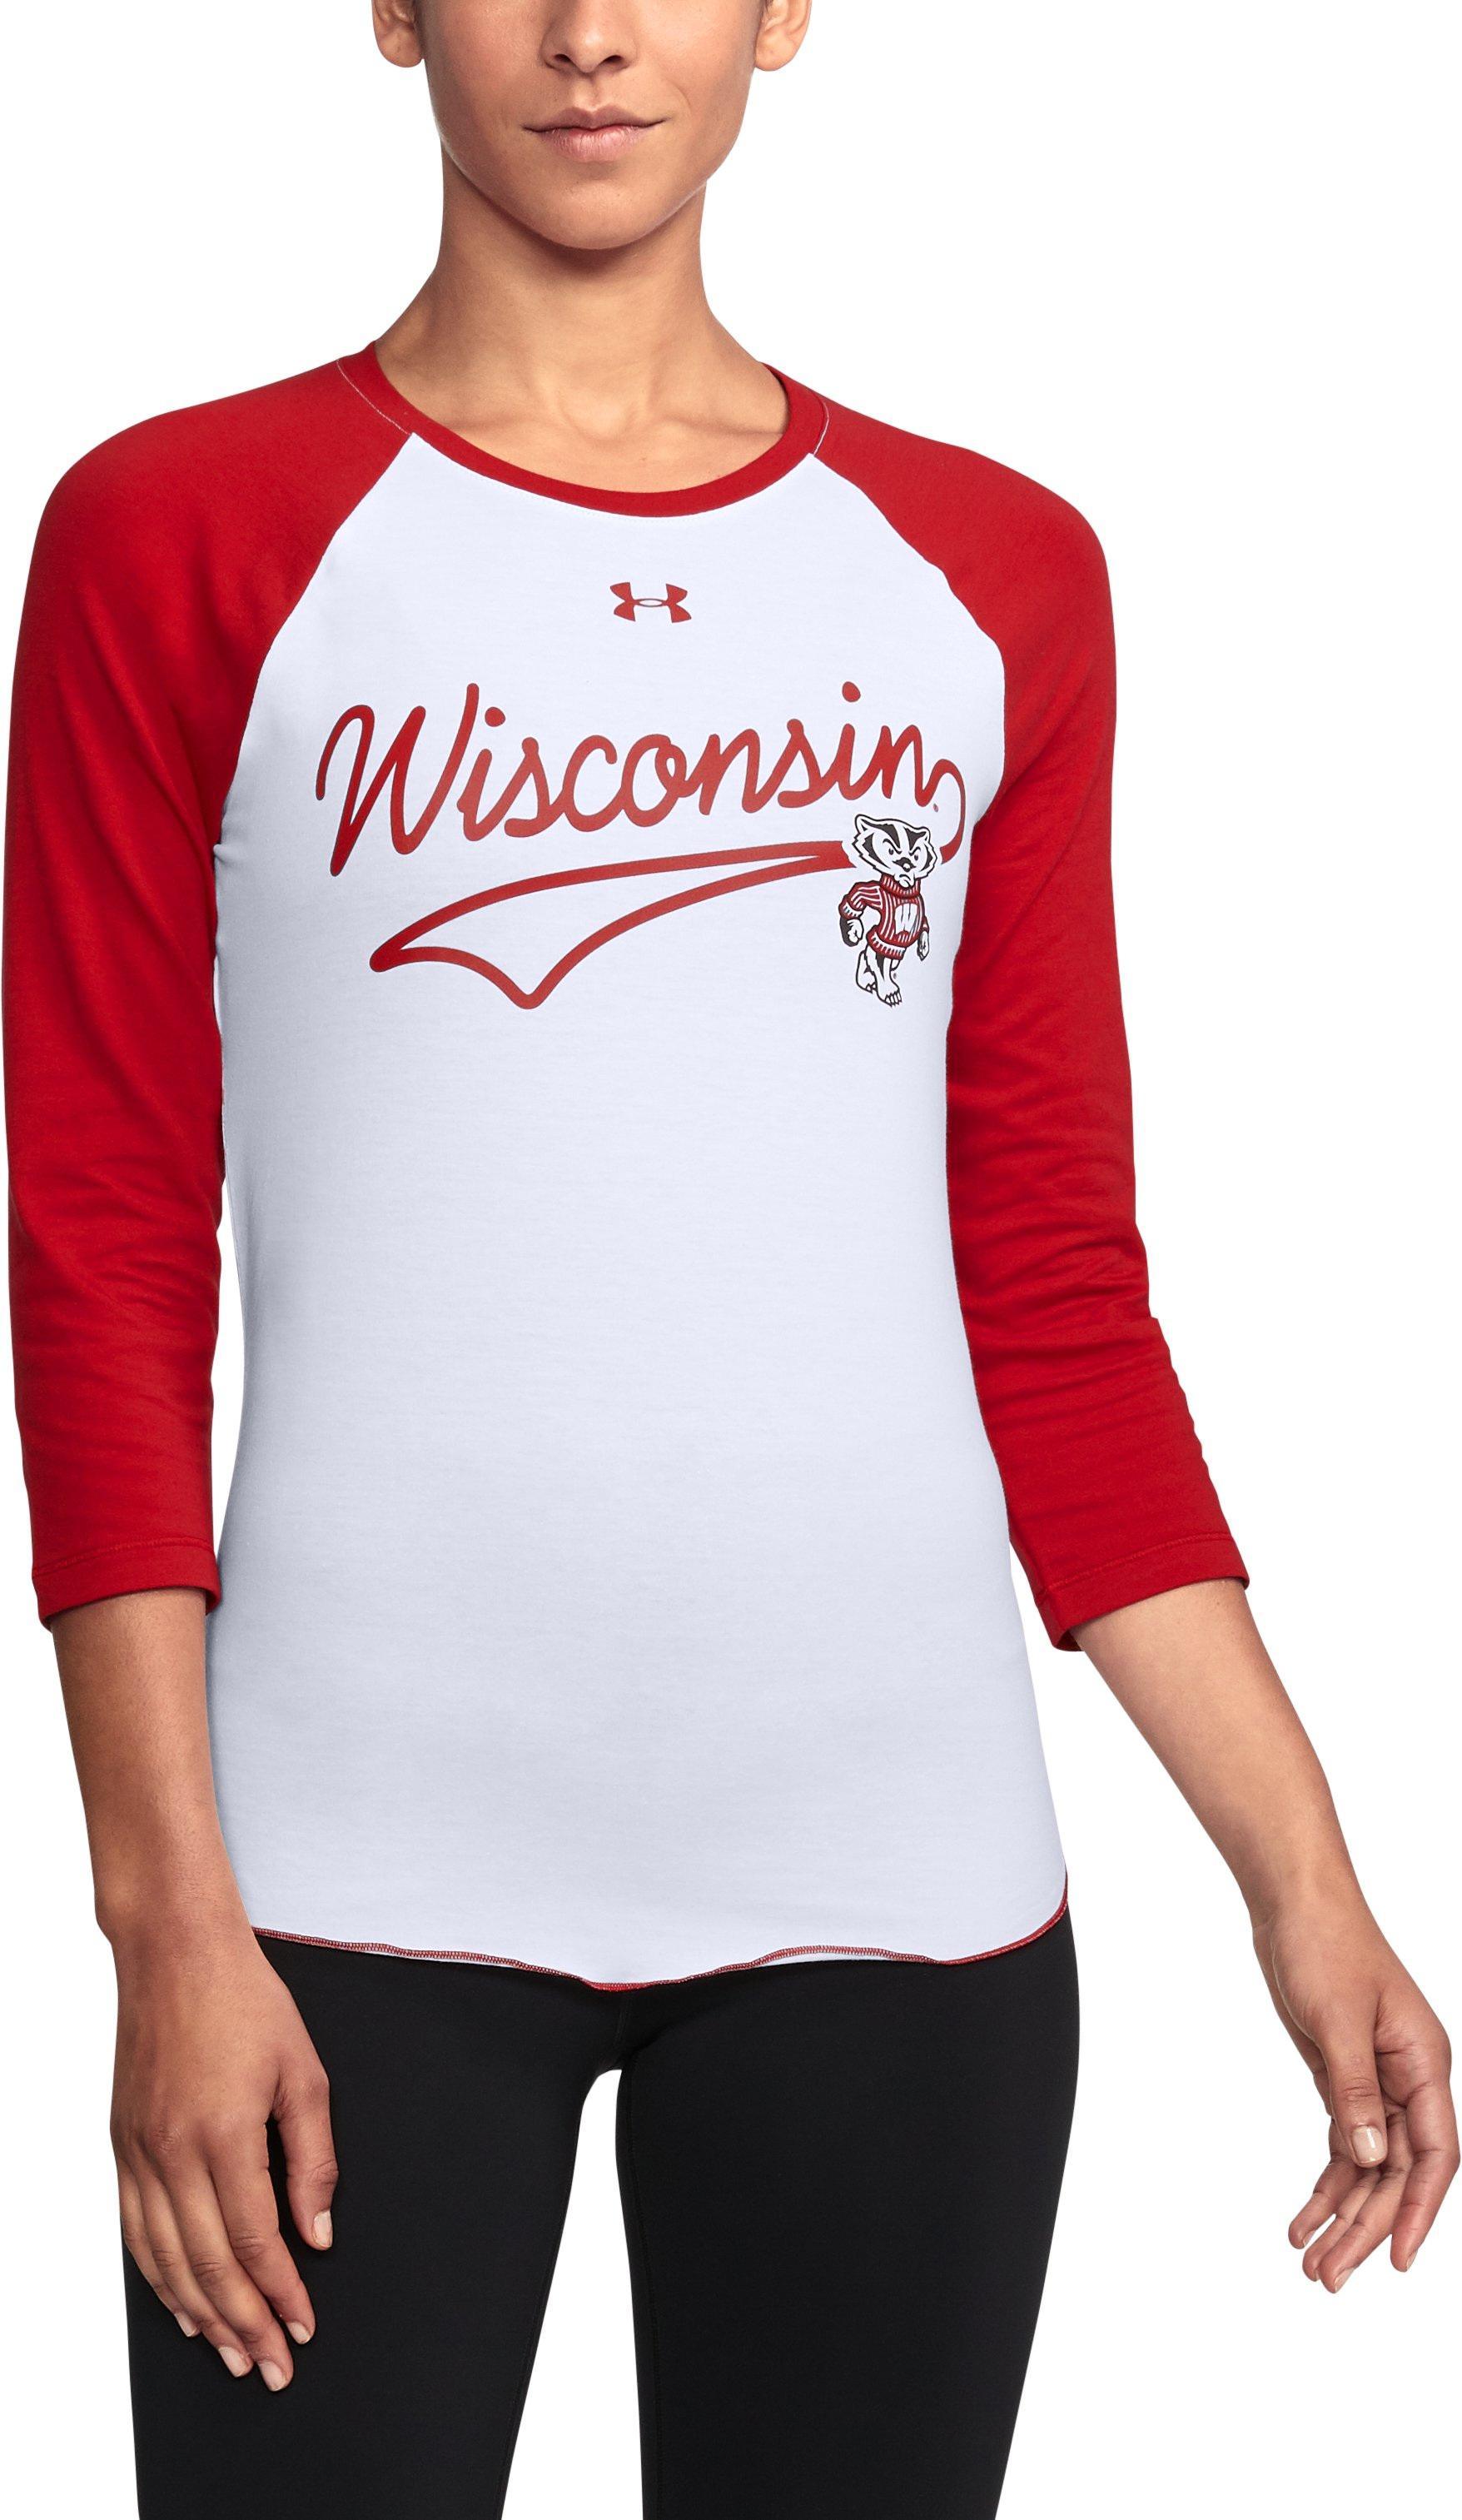 Women's Wisconsin Baseball TAPS T-Shirt, Flawless